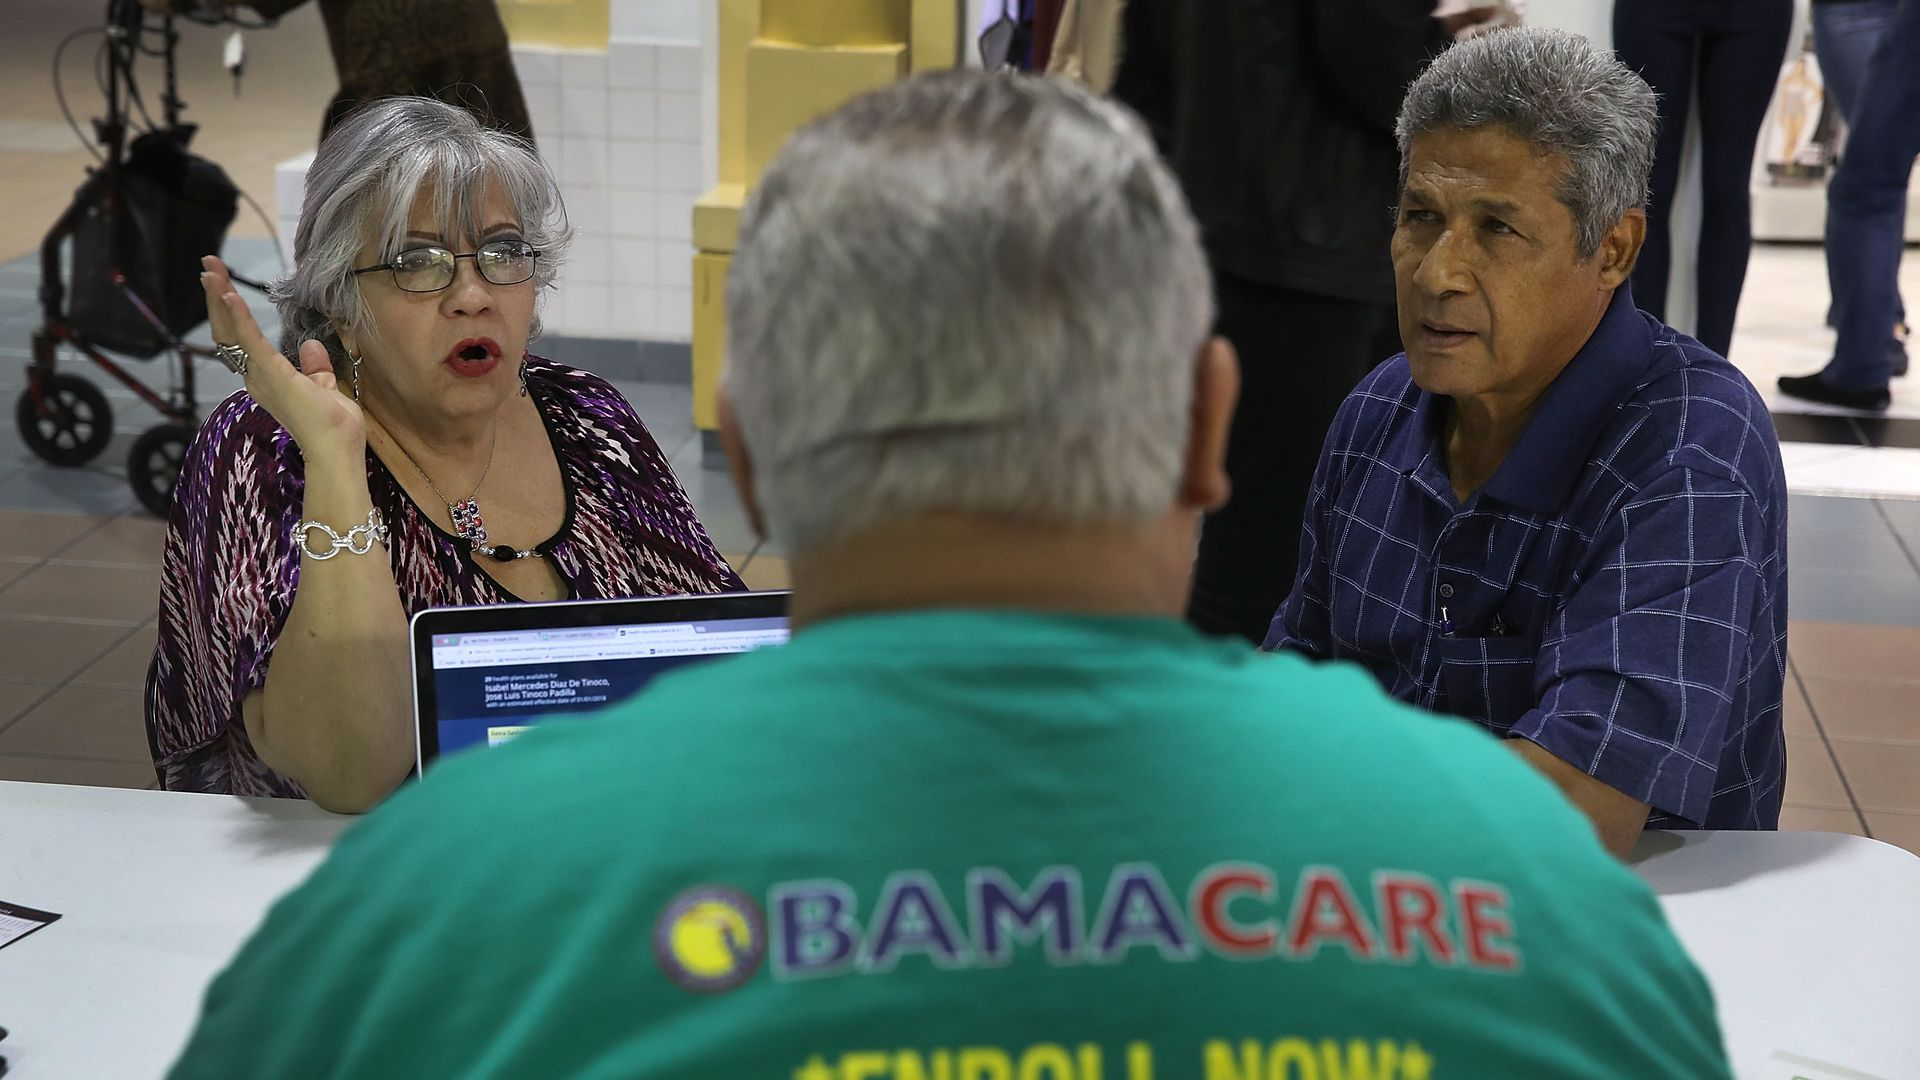 A man helps two Florida residents sign up for insurance under Obamacare